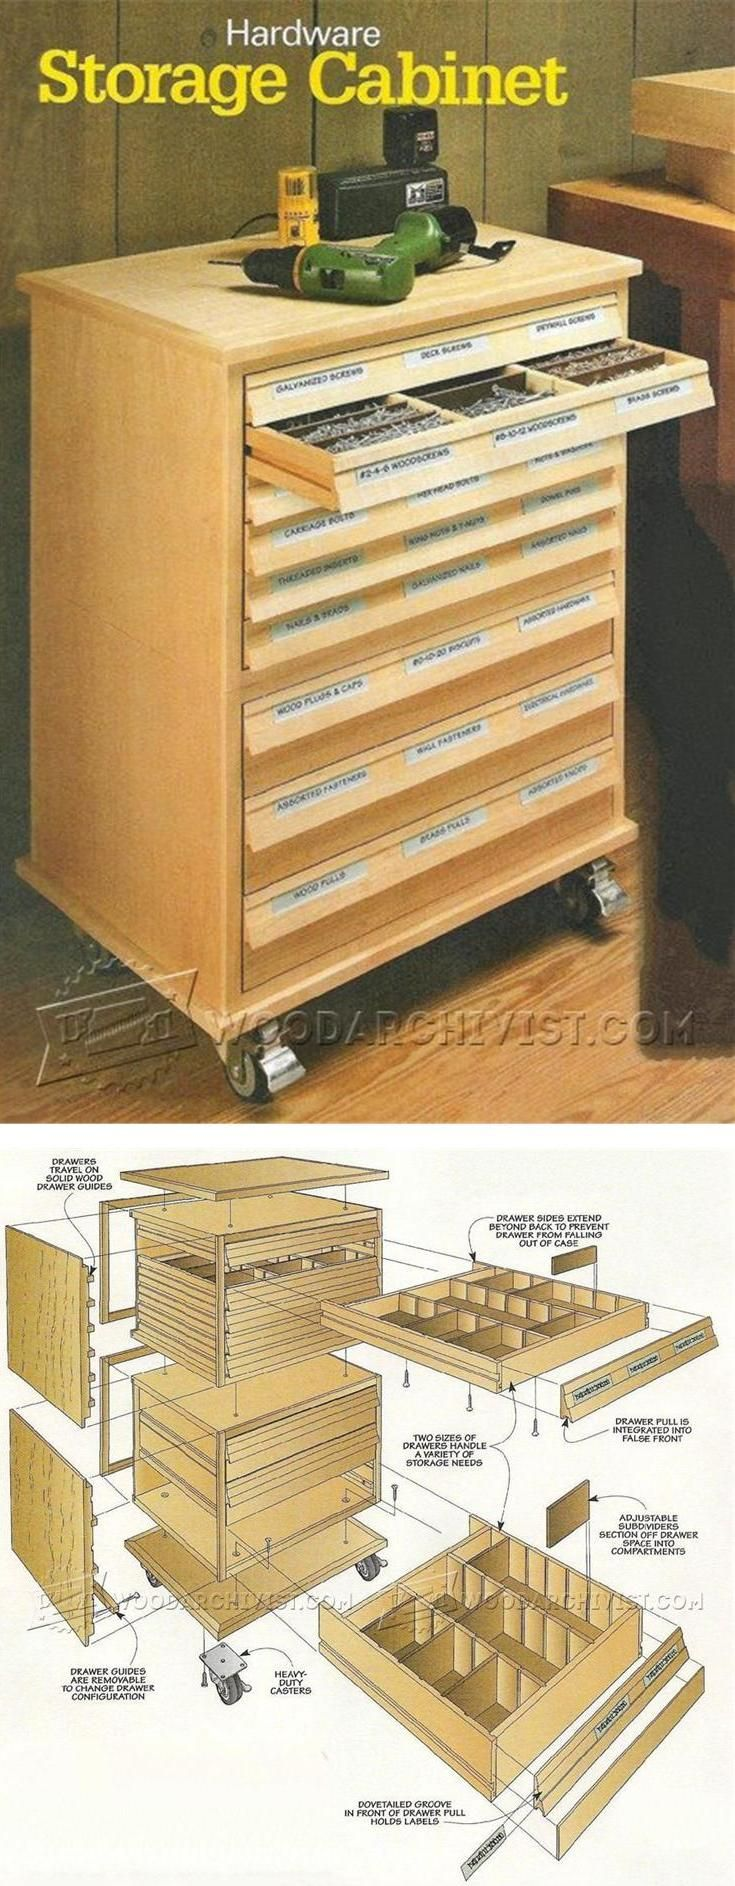 Hardware storage cabinet plans workshop solutions projects tips